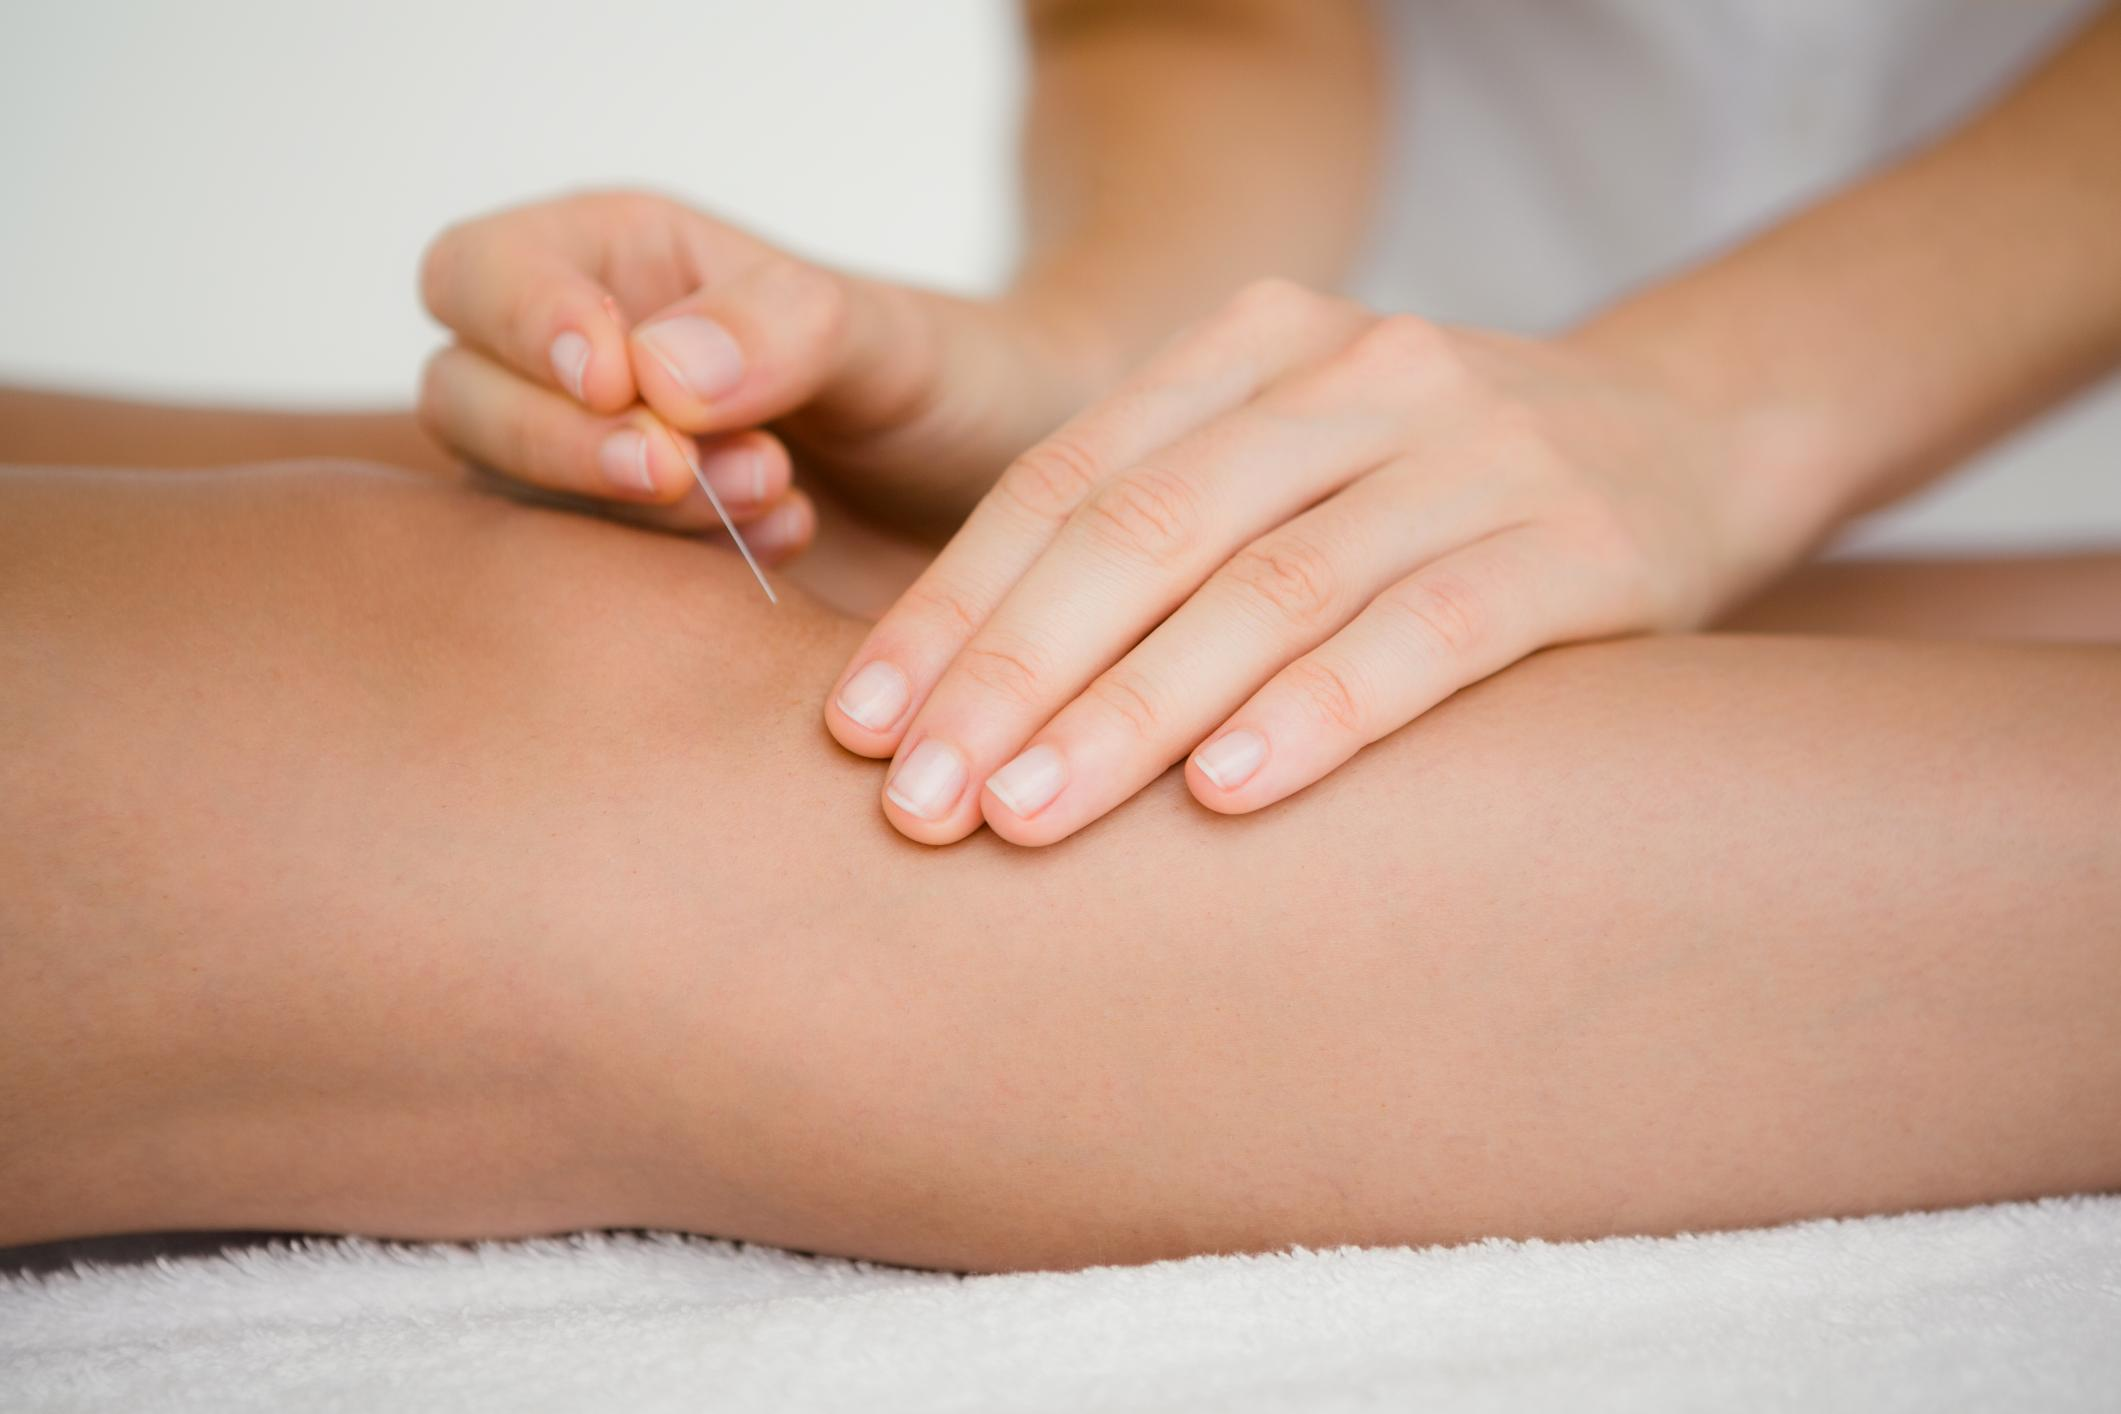 Looking for an Alternative to Hot Flash Treatment? Try Acupuncture